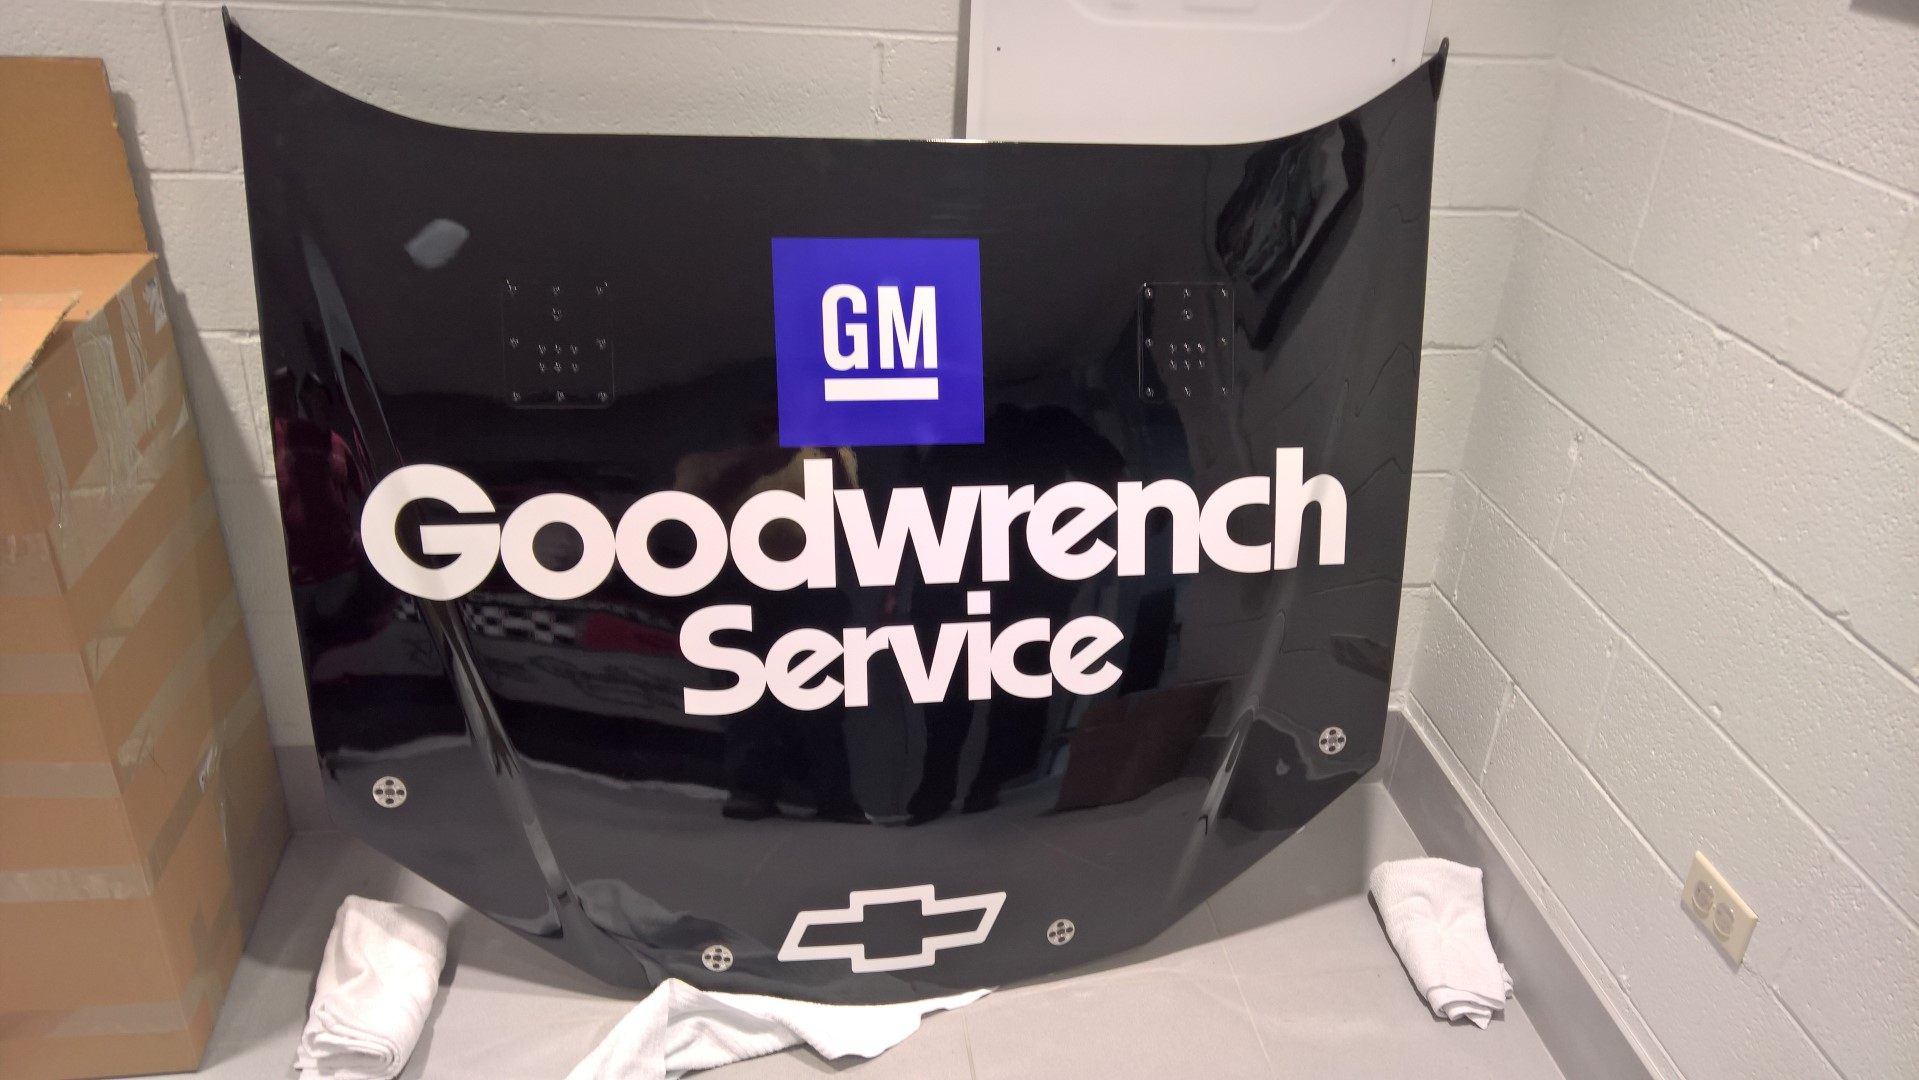 Goodwrench Service Replica Hood